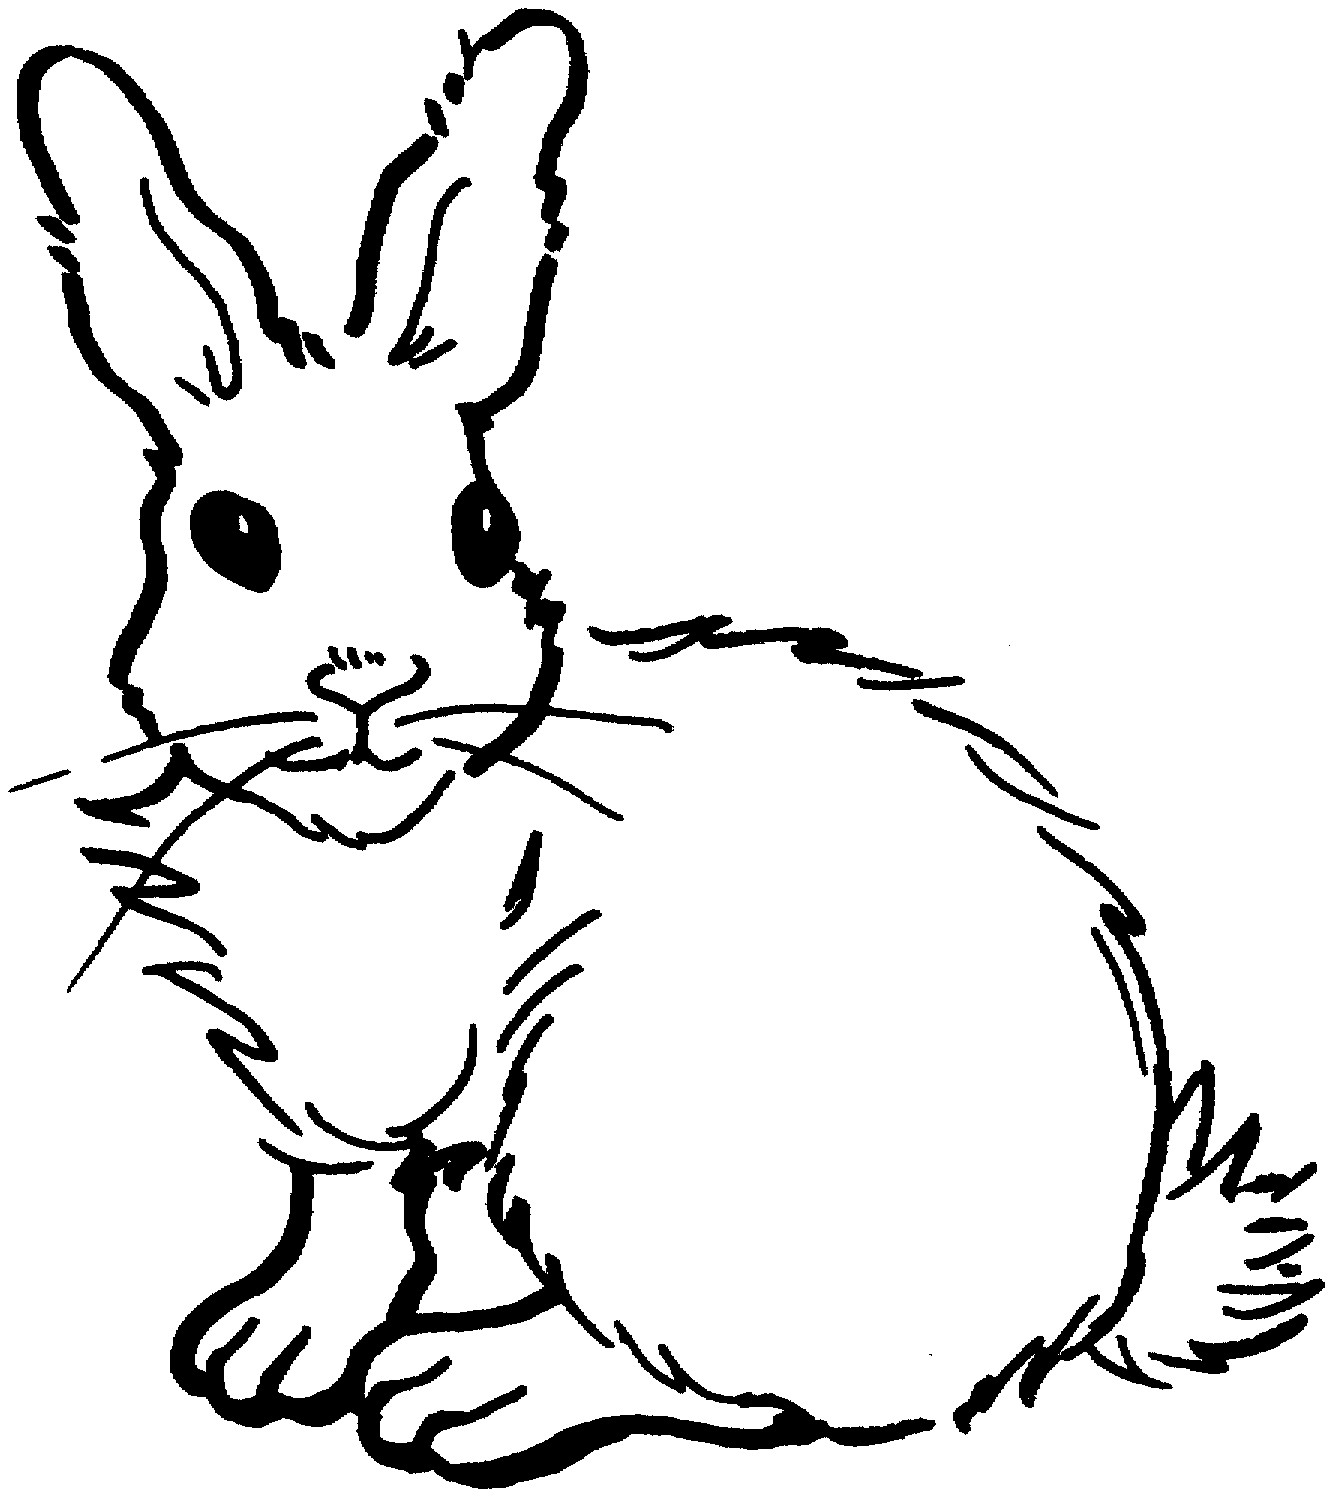 Coloring Pages Rabbit Best Free Printable Rabbit Coloring Pages Gallery Of Remarkable Realistic Bunny Coloring Pages Rabb Unknown Download